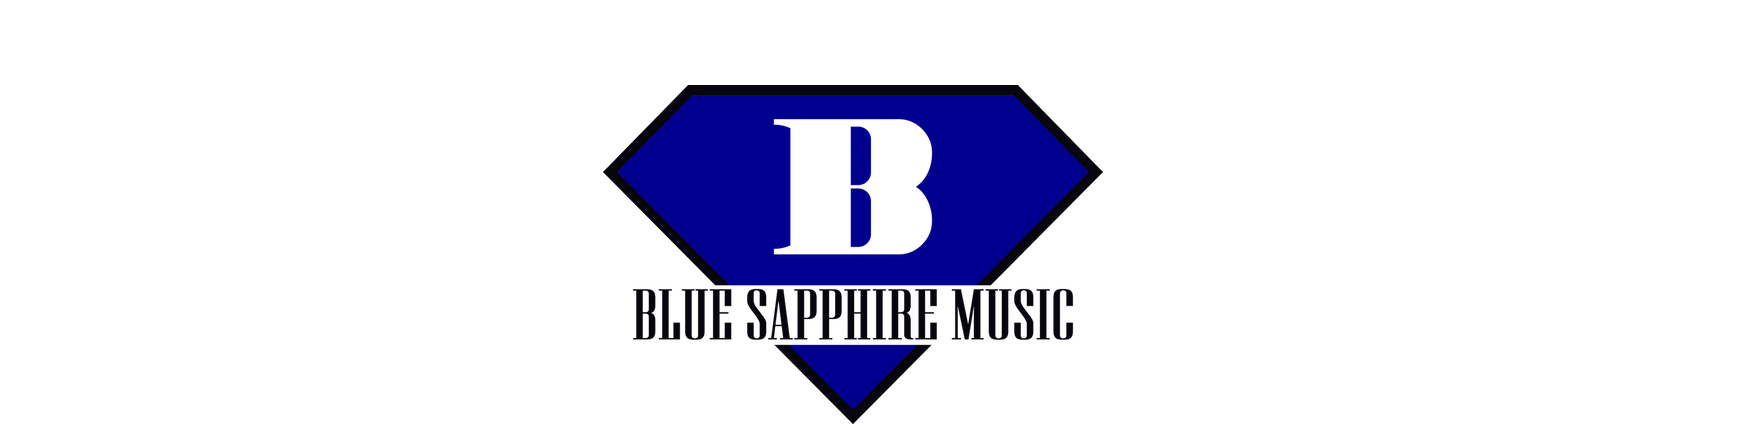 blue sapphire banner.png